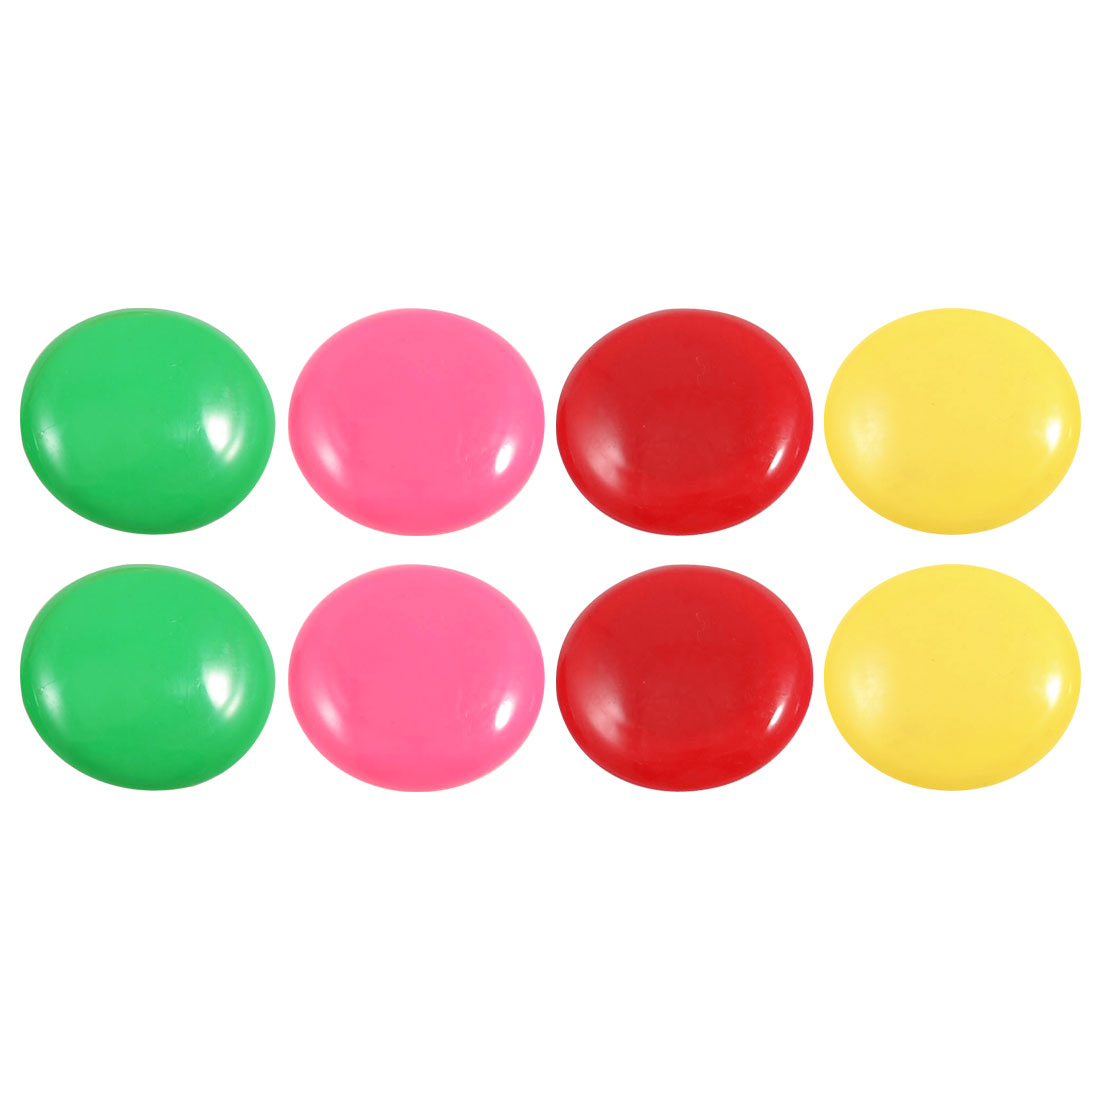 8 Pcs Strong Plastic Fridge Refrigerator Magnets for White Board 1.6""